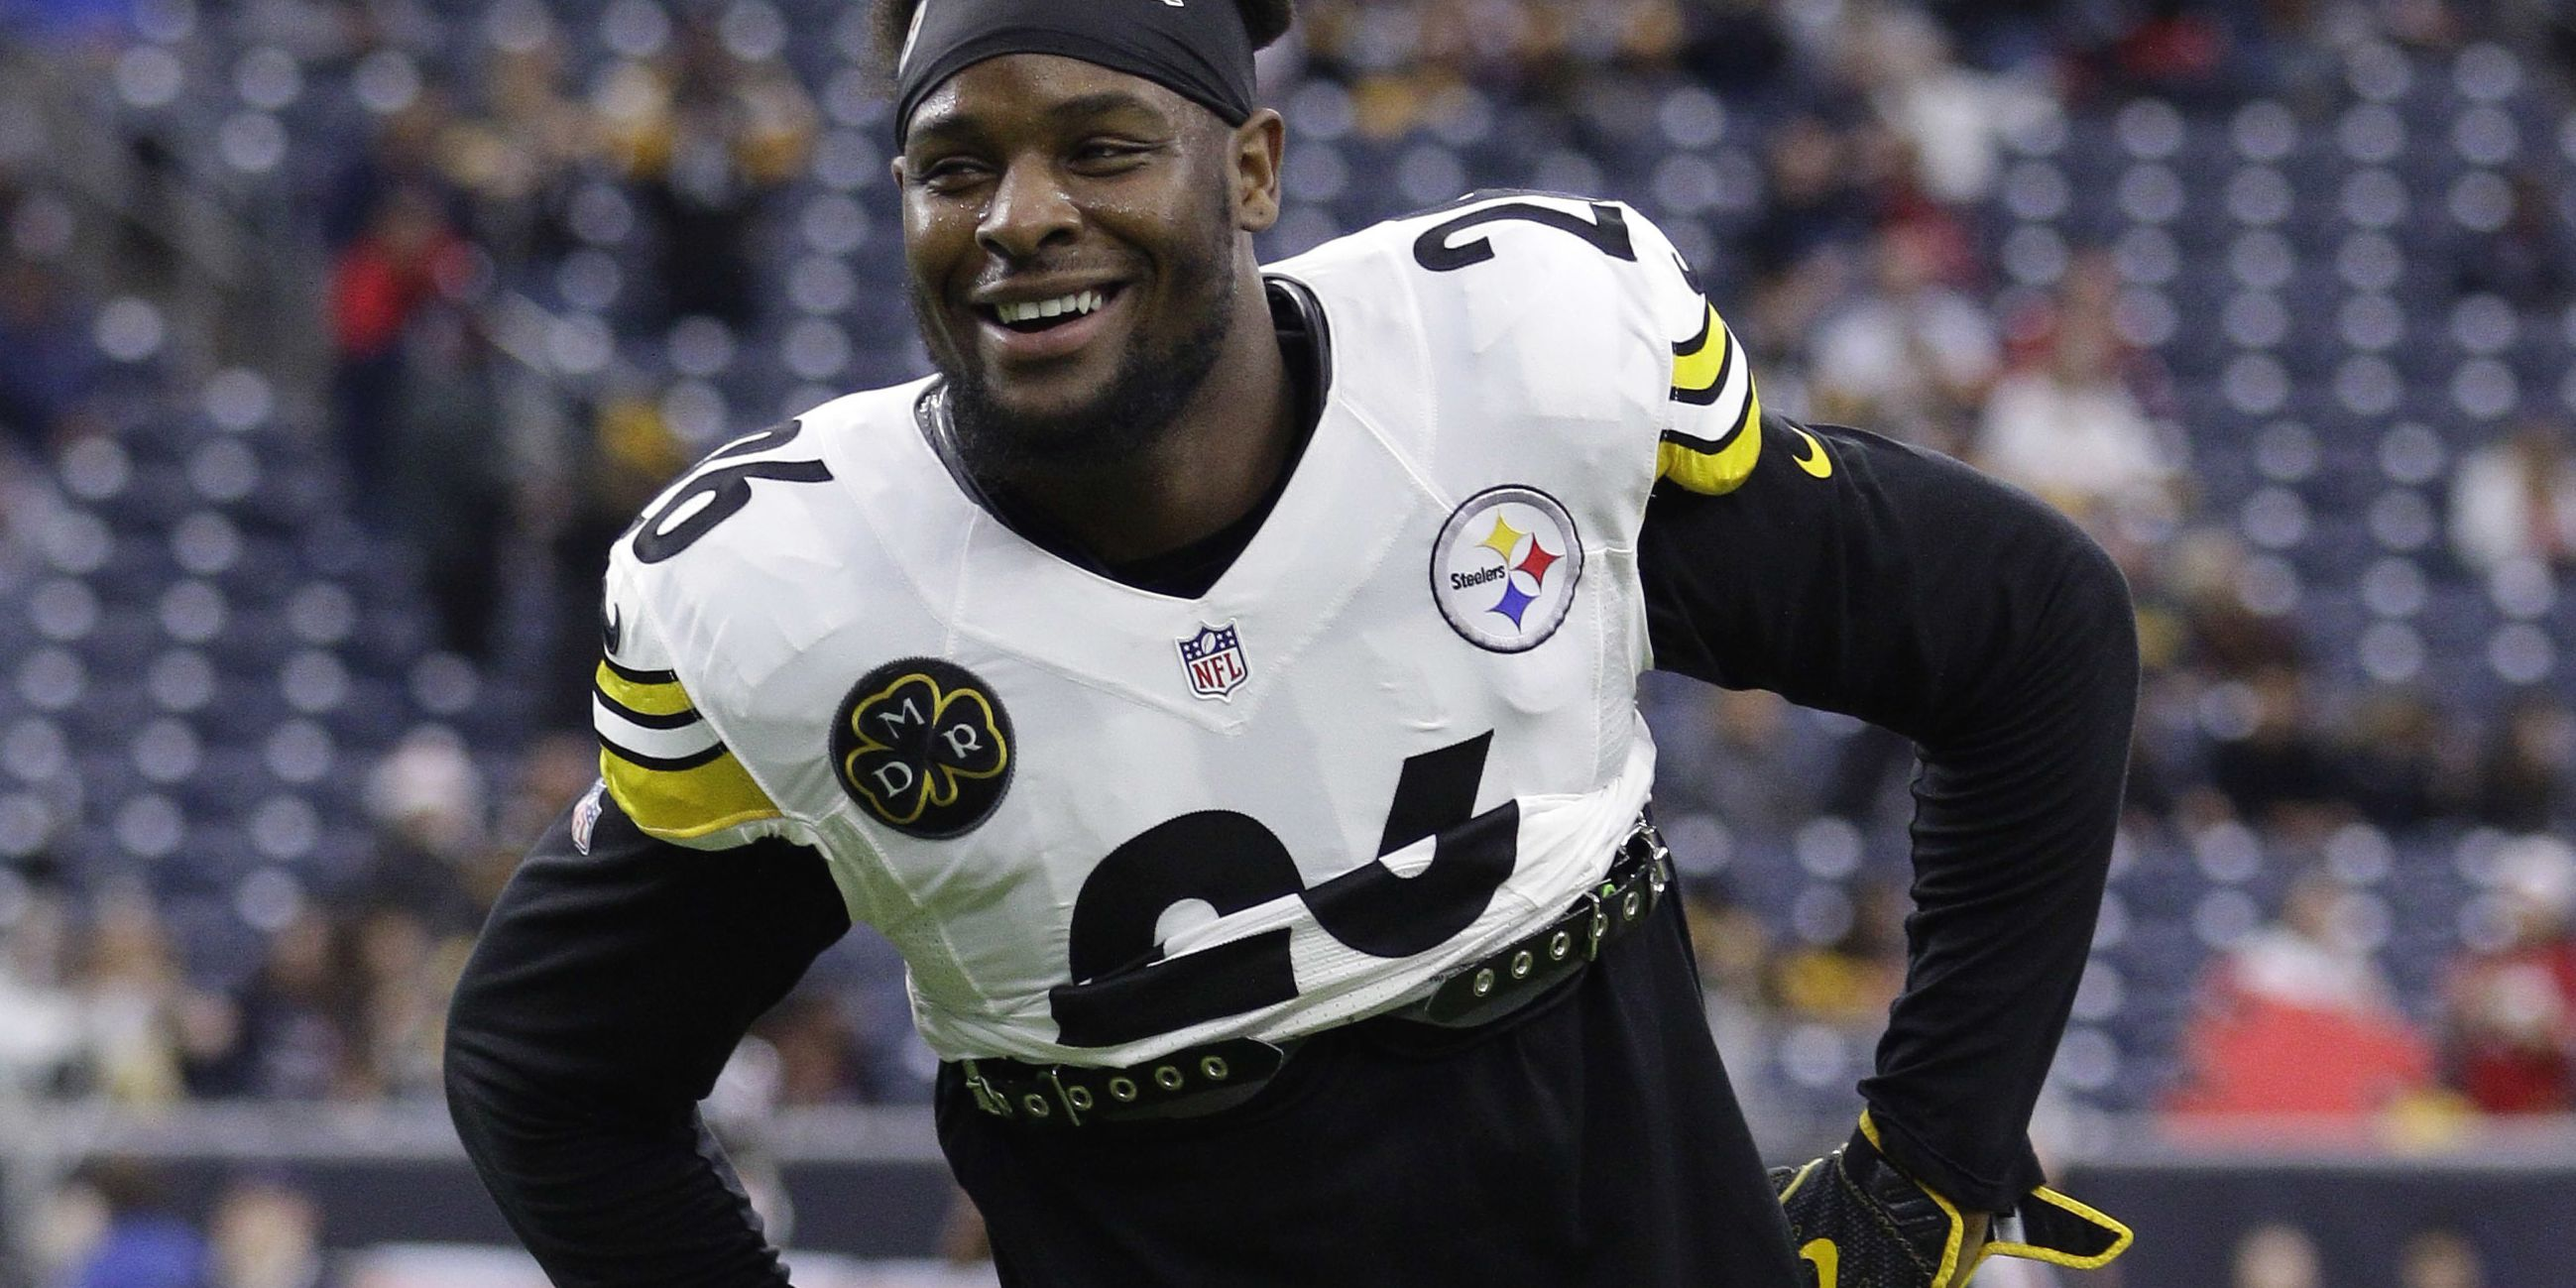 Jets agree to sign RB Le'Veon Bell, according to reports